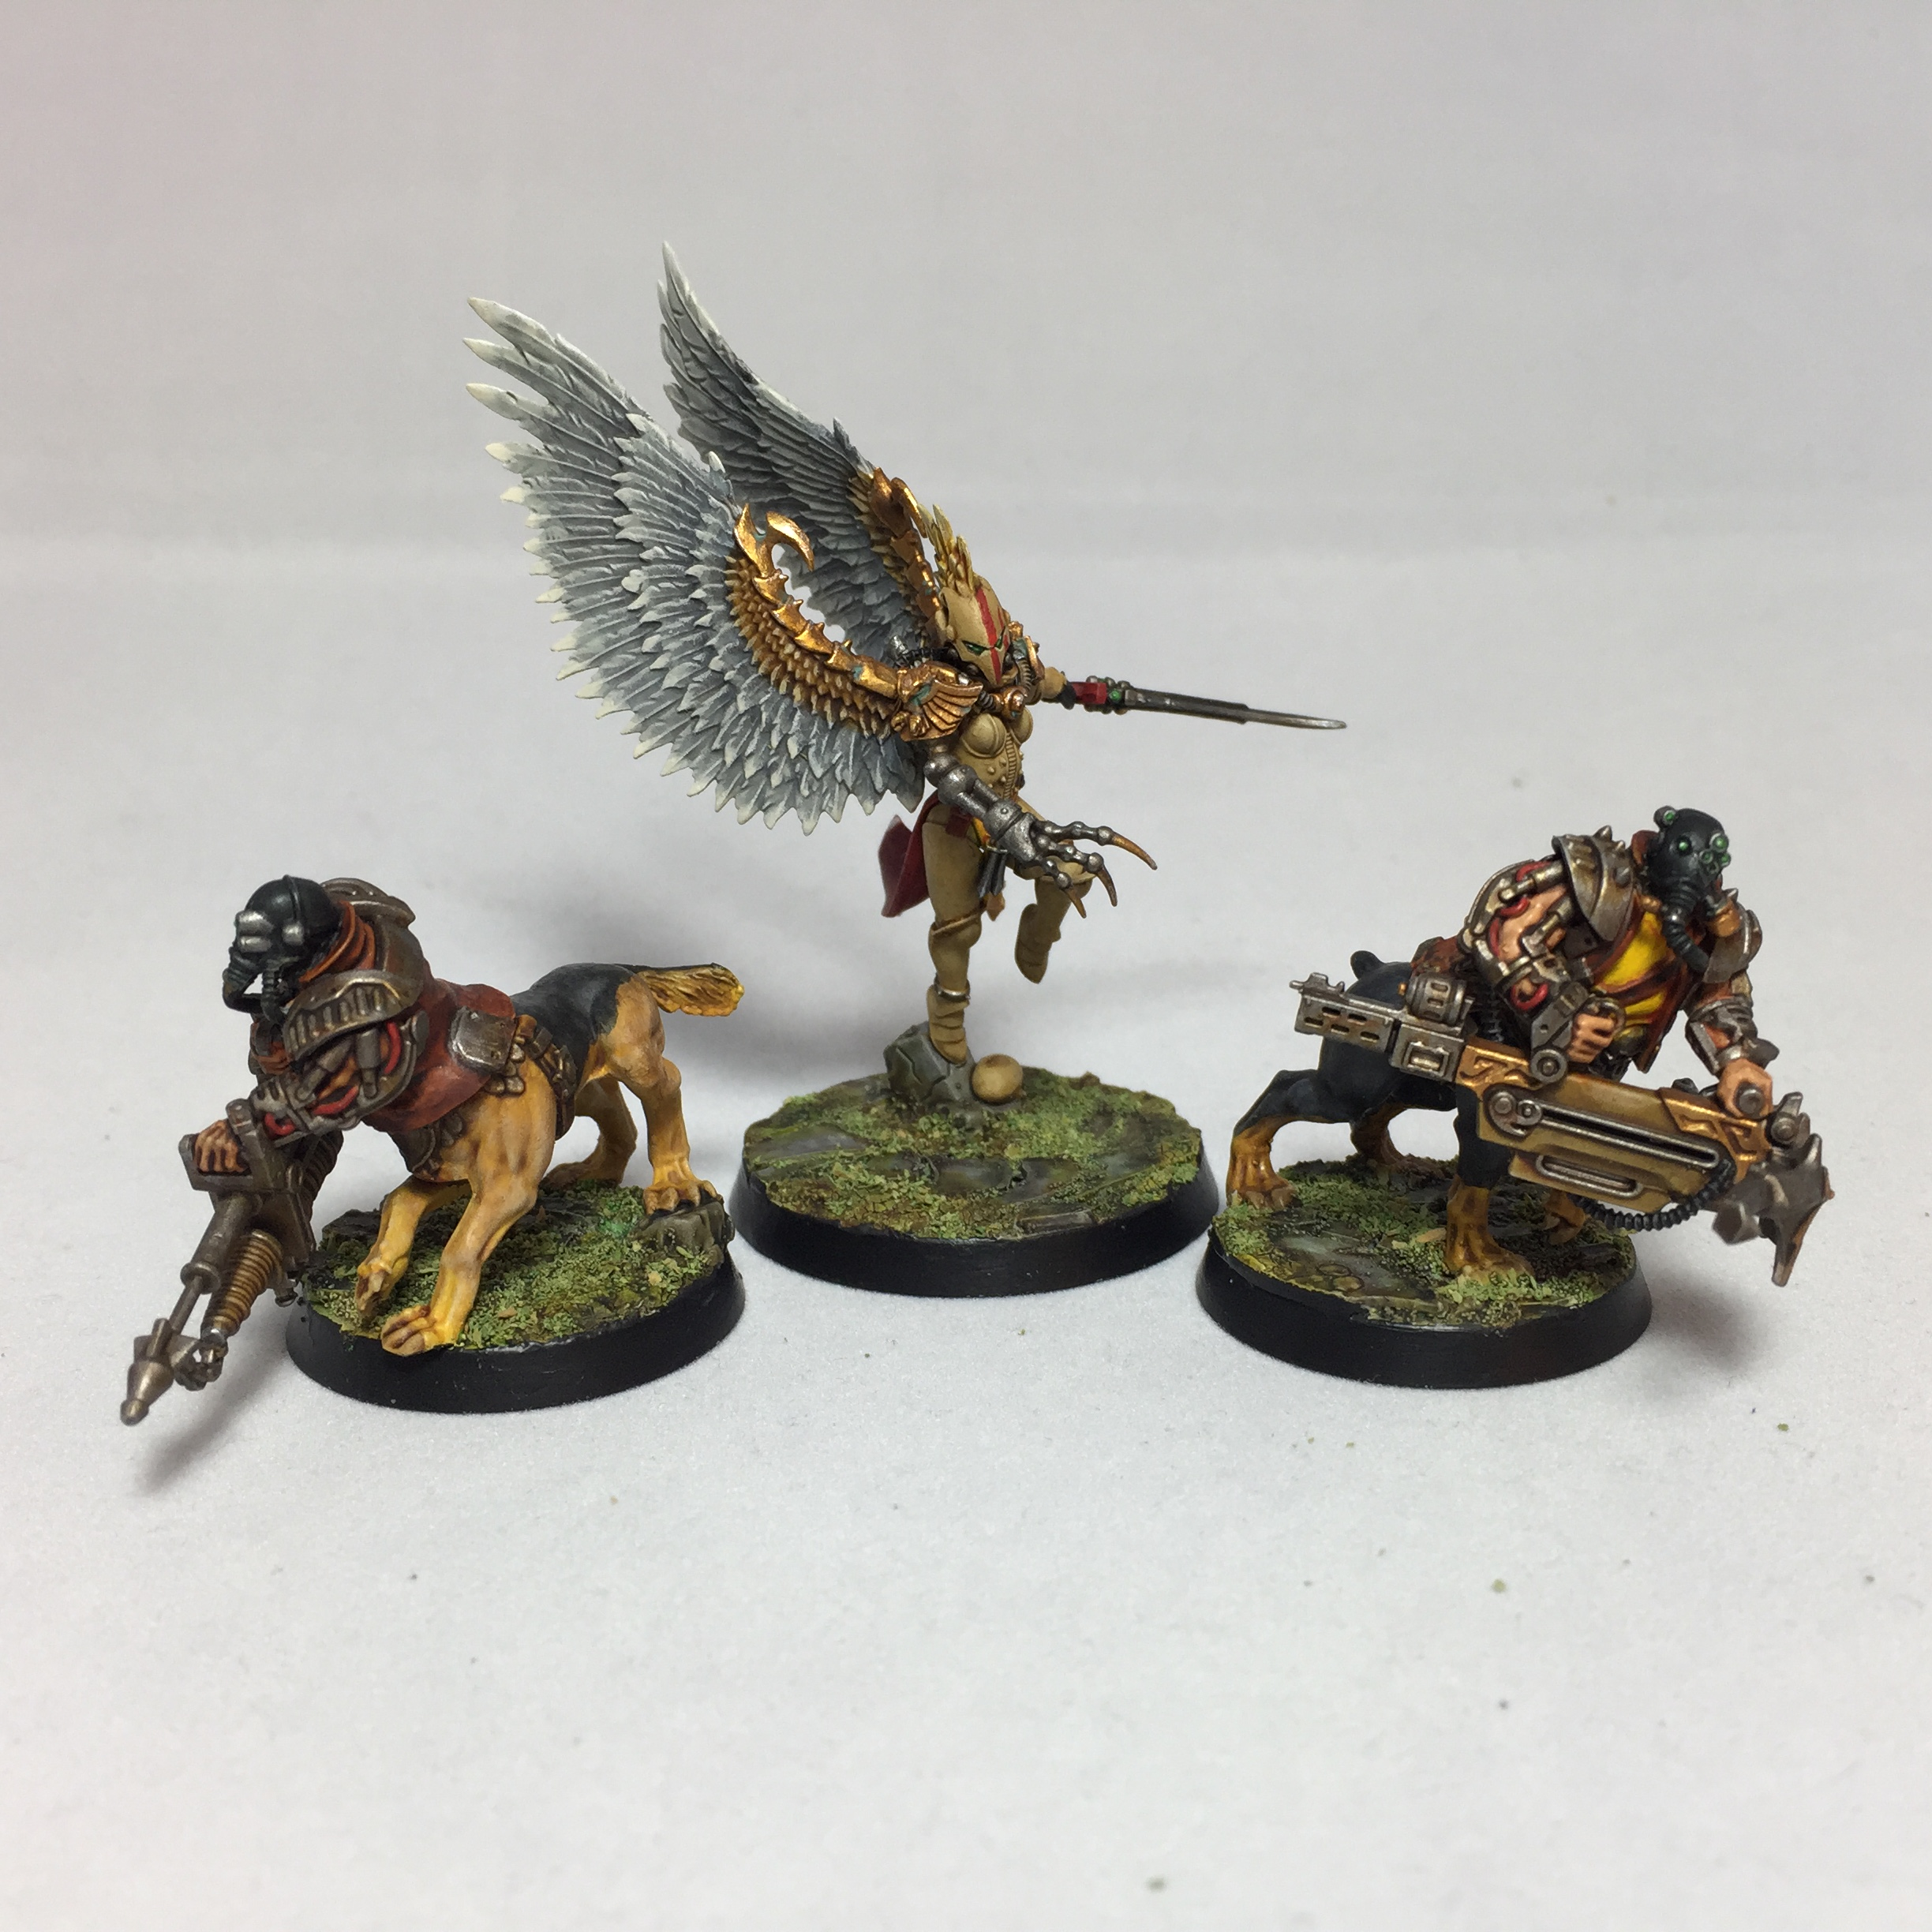 The Hawk and the Hounds